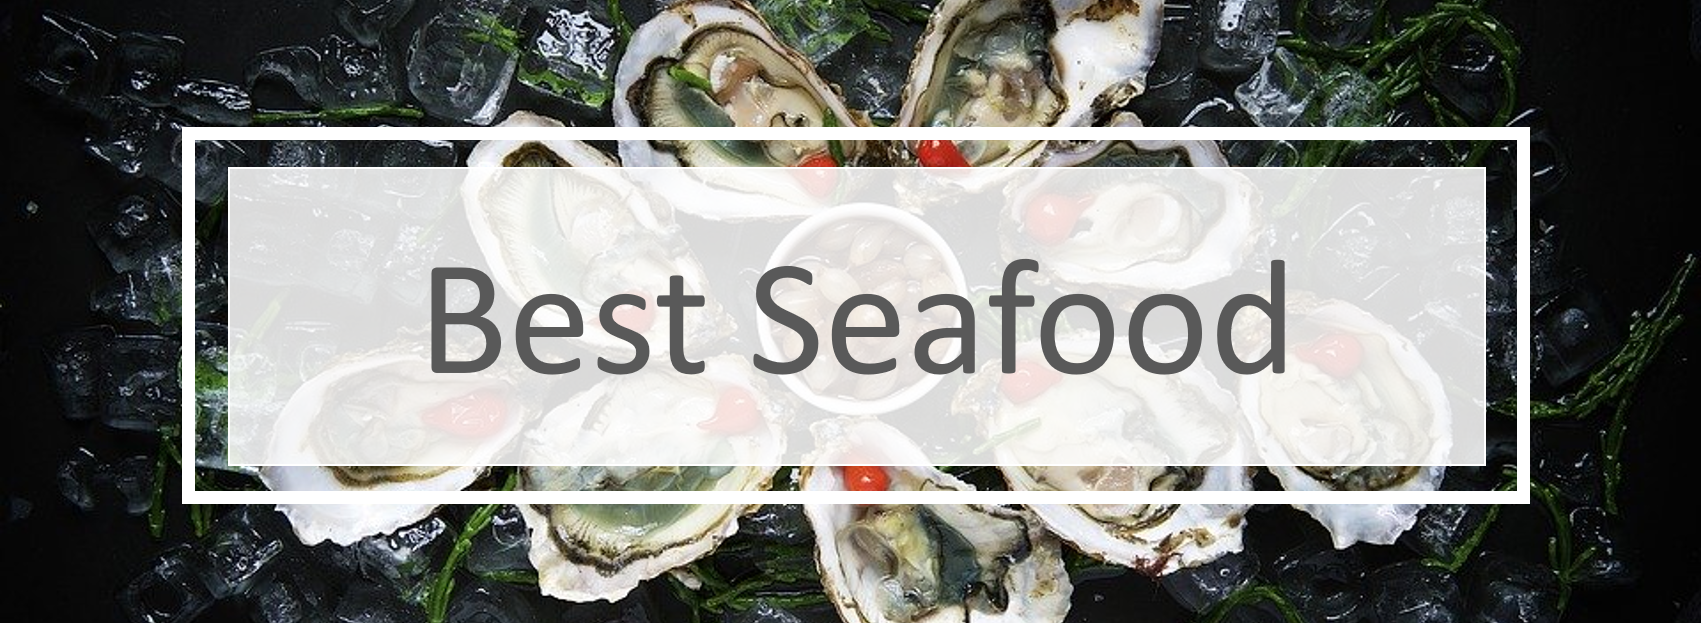 Best Seafood